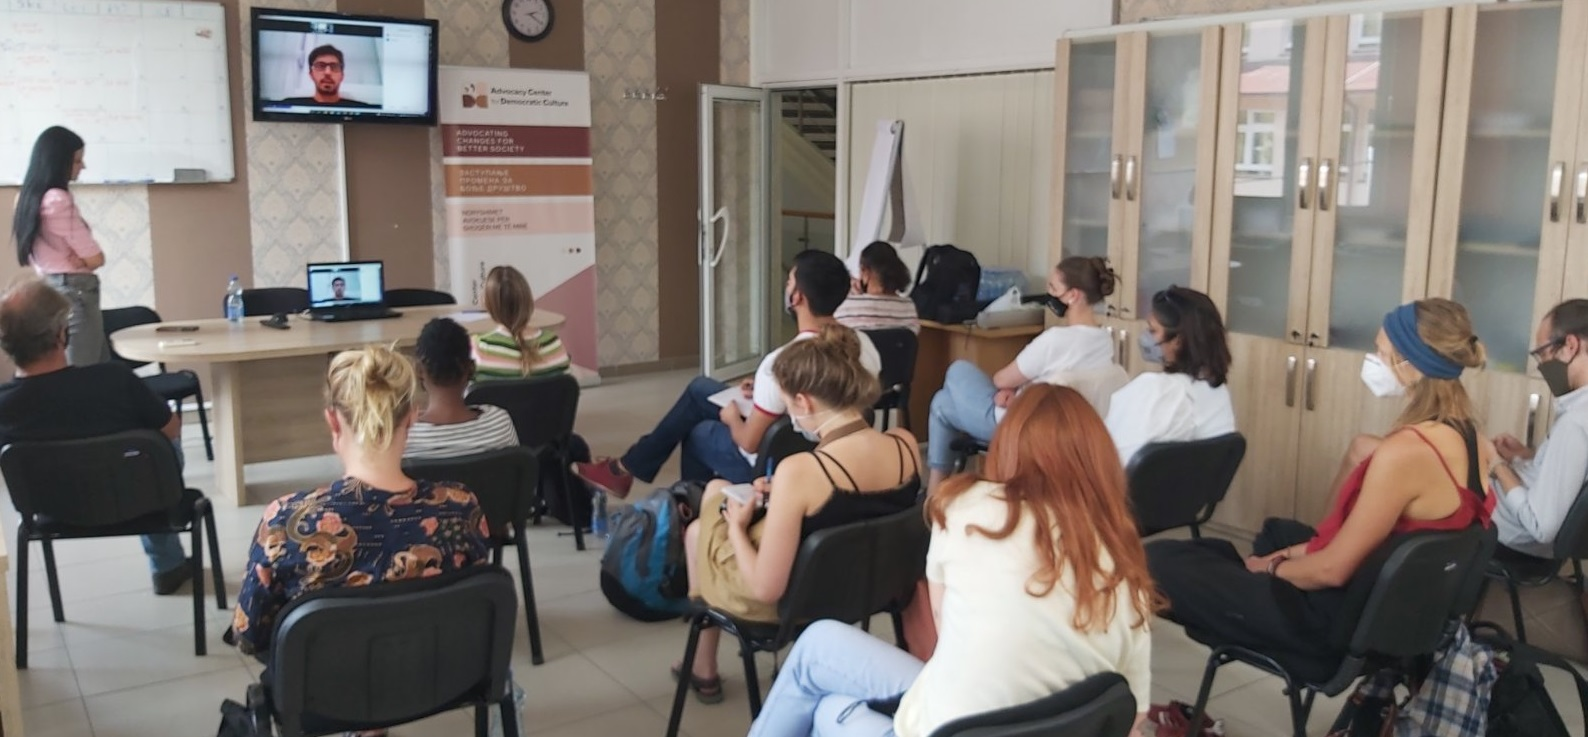 visit-of-the-students-of-european-masters-degree-in-human-rights-and-democratization-ema